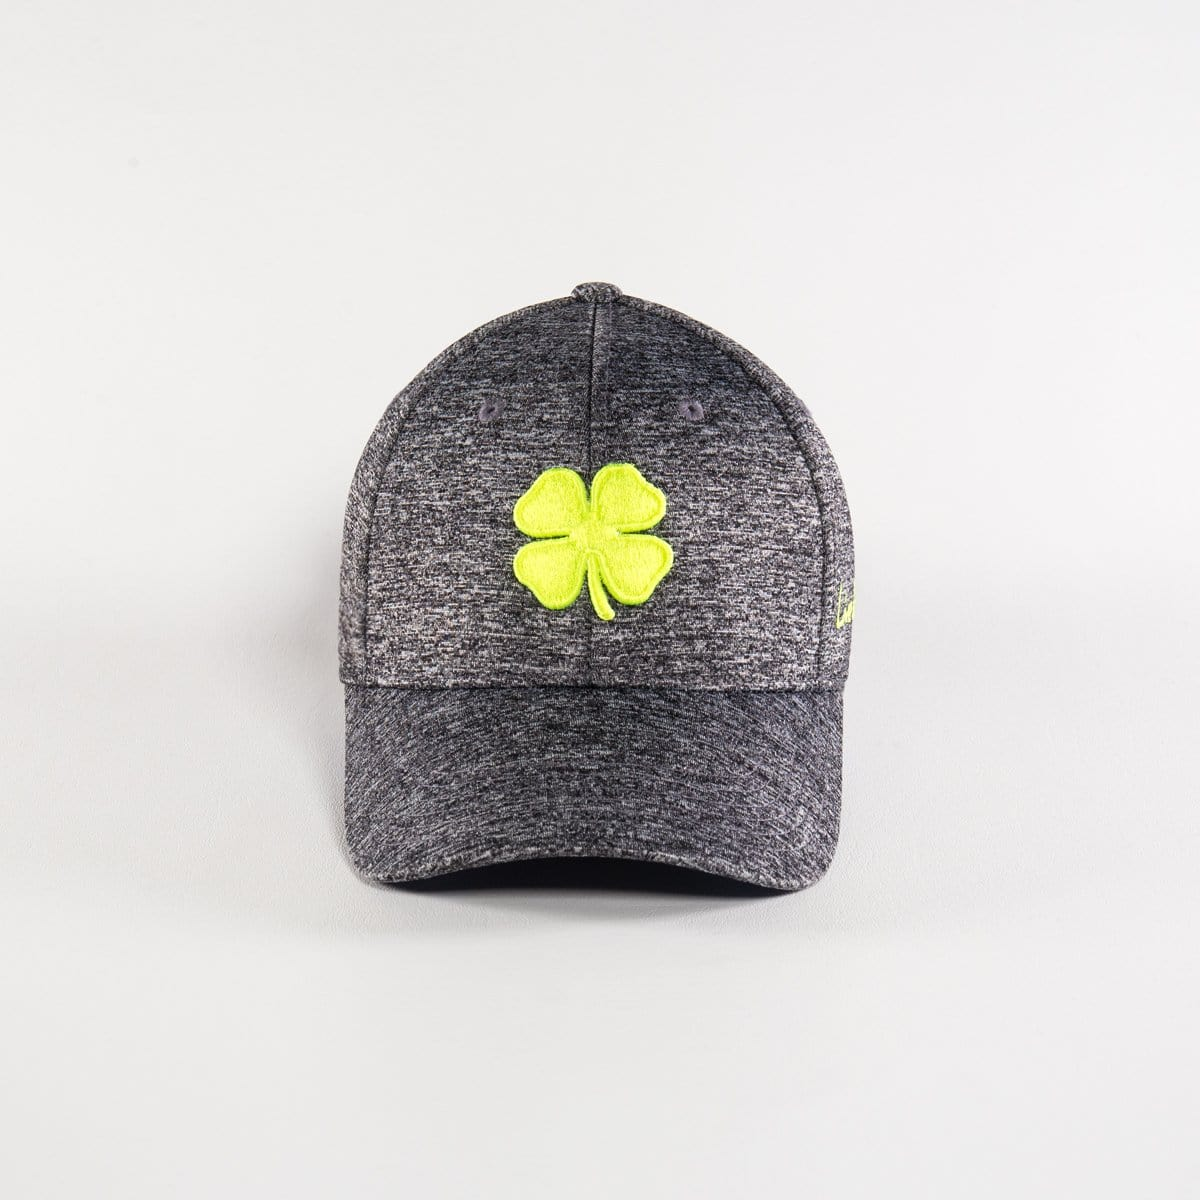 Black Clover Baseball Caps Lucky Heather Smoke equestrian team apparel online tack store mobile tack store custom farm apparel custom show stable clothing equestrian lifestyle horse show clothing riding clothes horses equestrian tack store